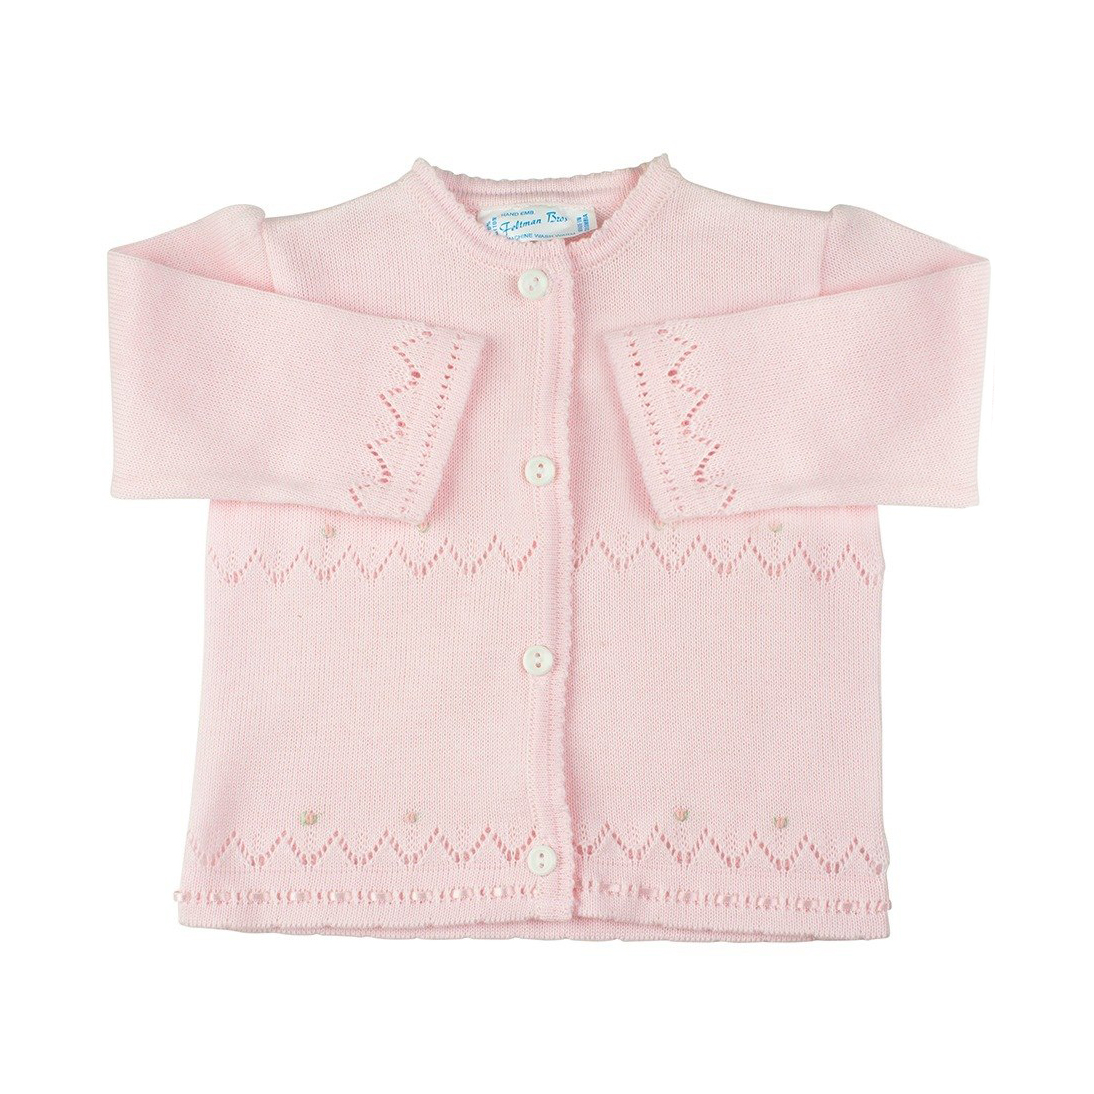 Feltman Brothers Infant Girls Pink Cardigan Sweater with Pearls